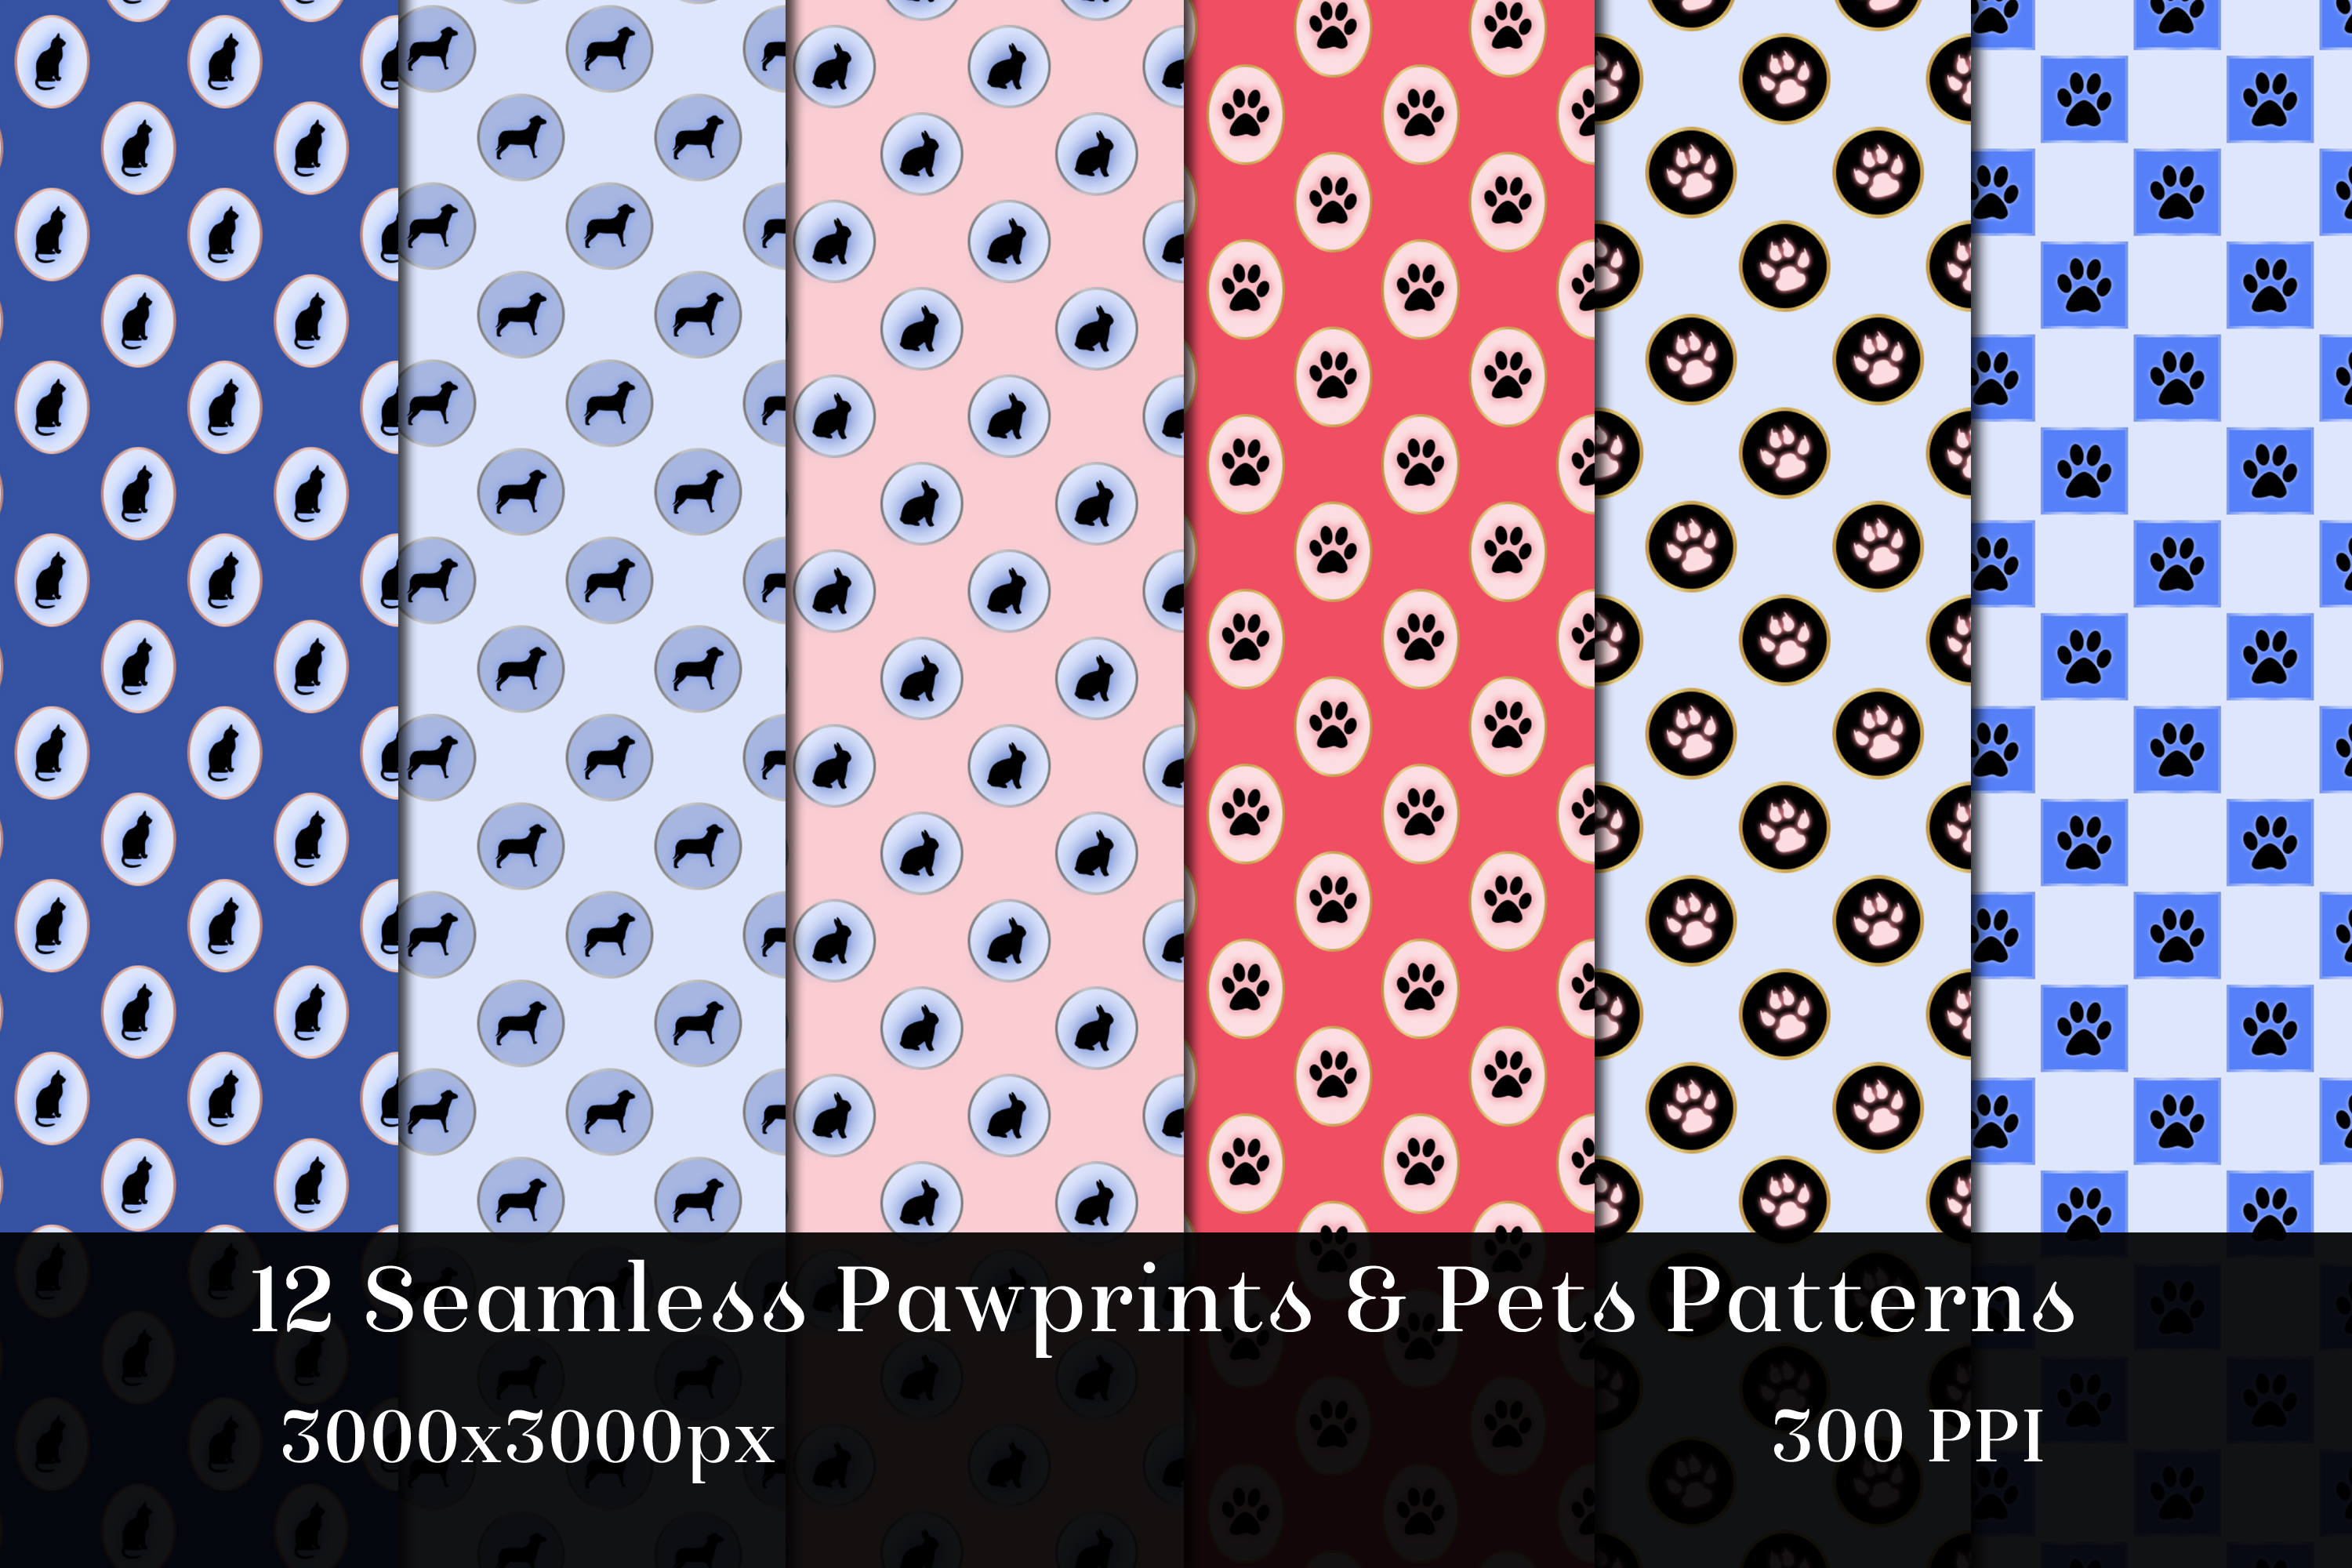 Seamless Pawprints & Pets Patterns - 12 Images example image 2